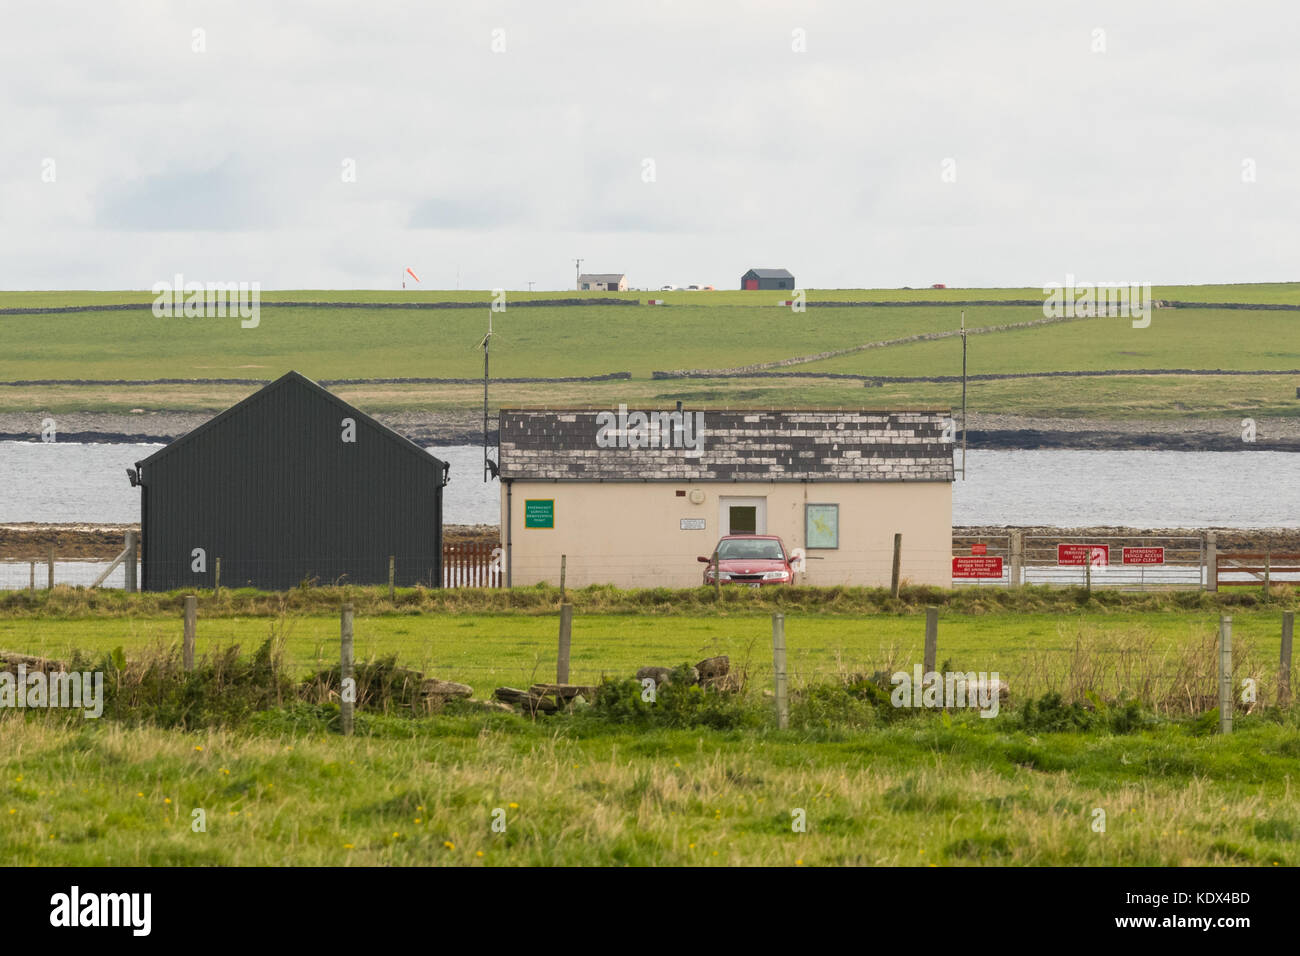 Westray Airport in the foreground and Papa Westray Airport on the horizon, Orkney Islands, Scotland, UK - Stock Image